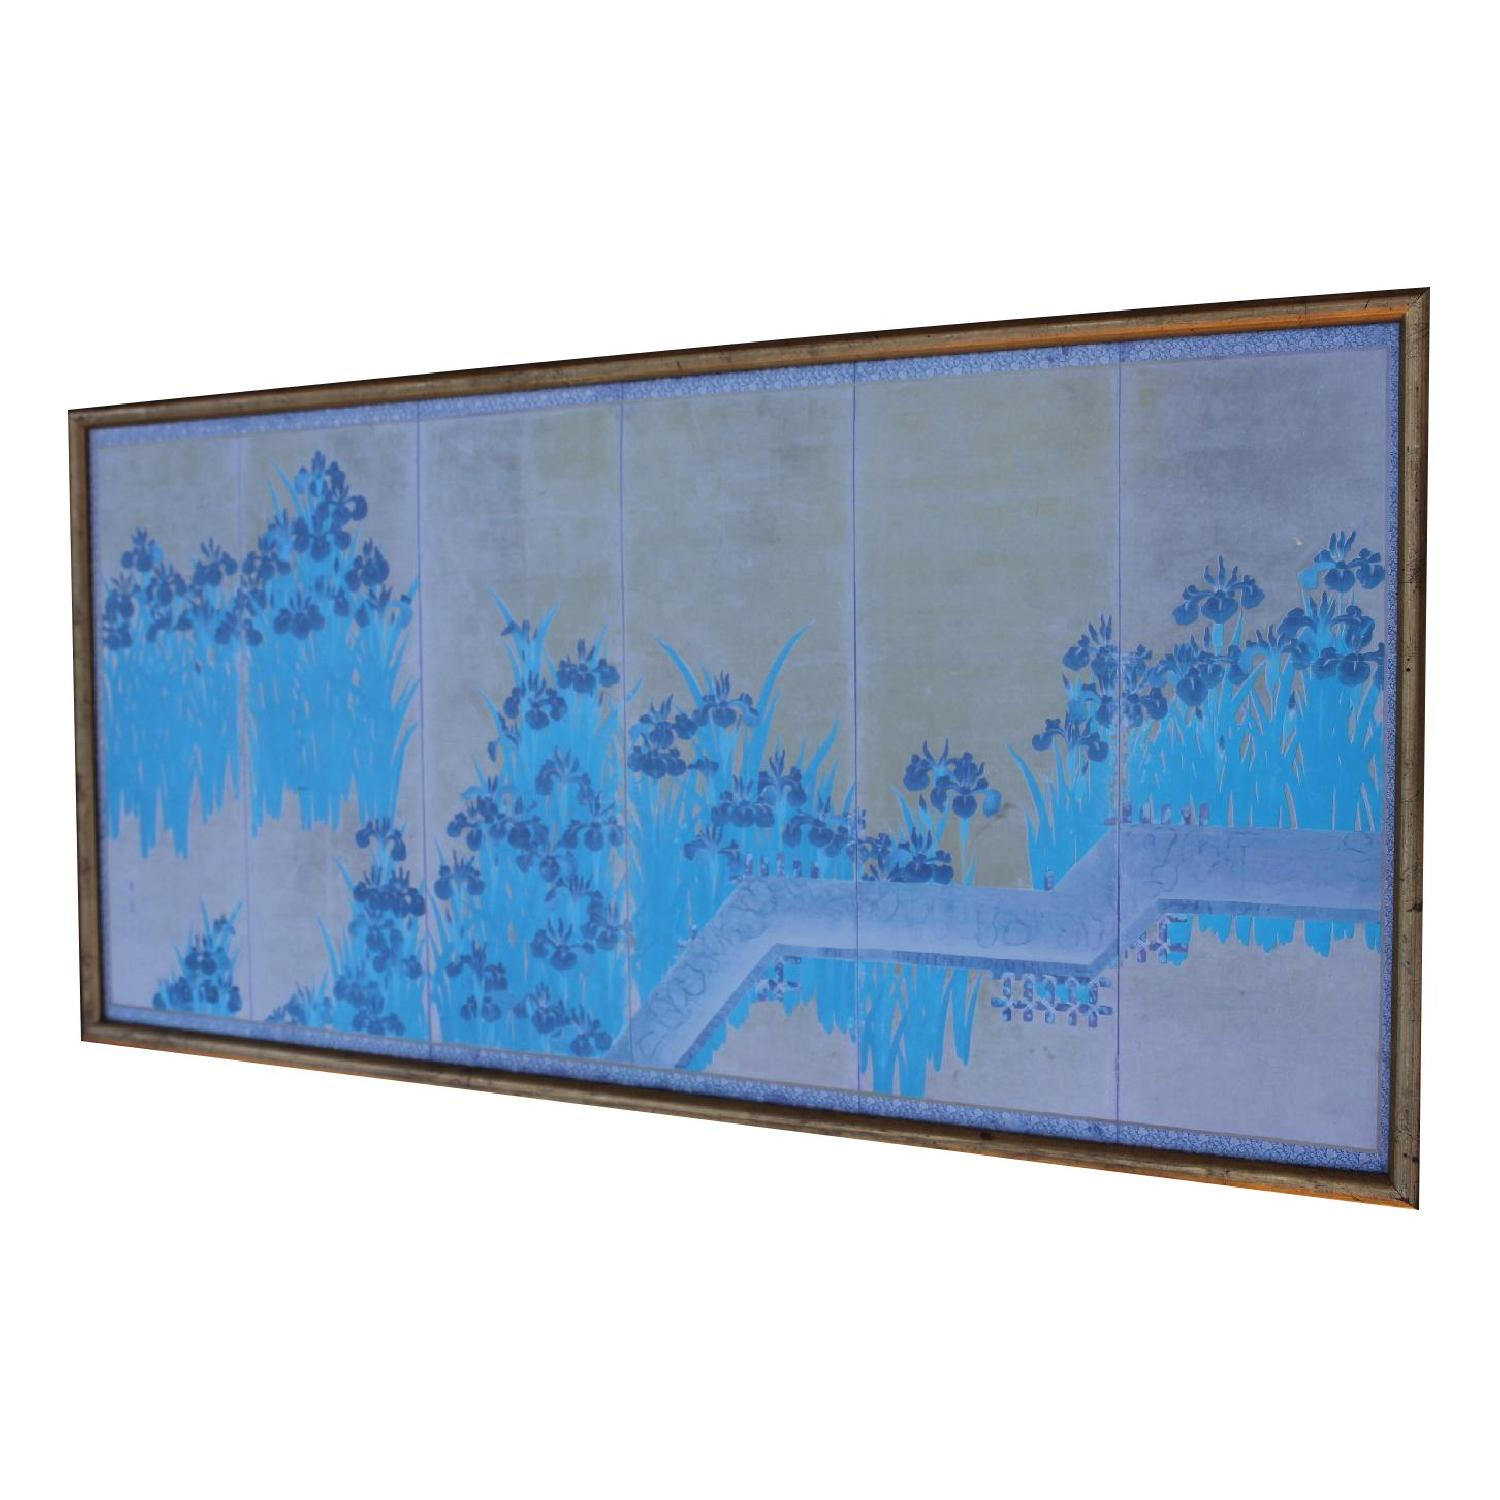 Antique Chinese Turquoise/Gold Print on Paper of Iris Flowers in Gold Frame - image-3